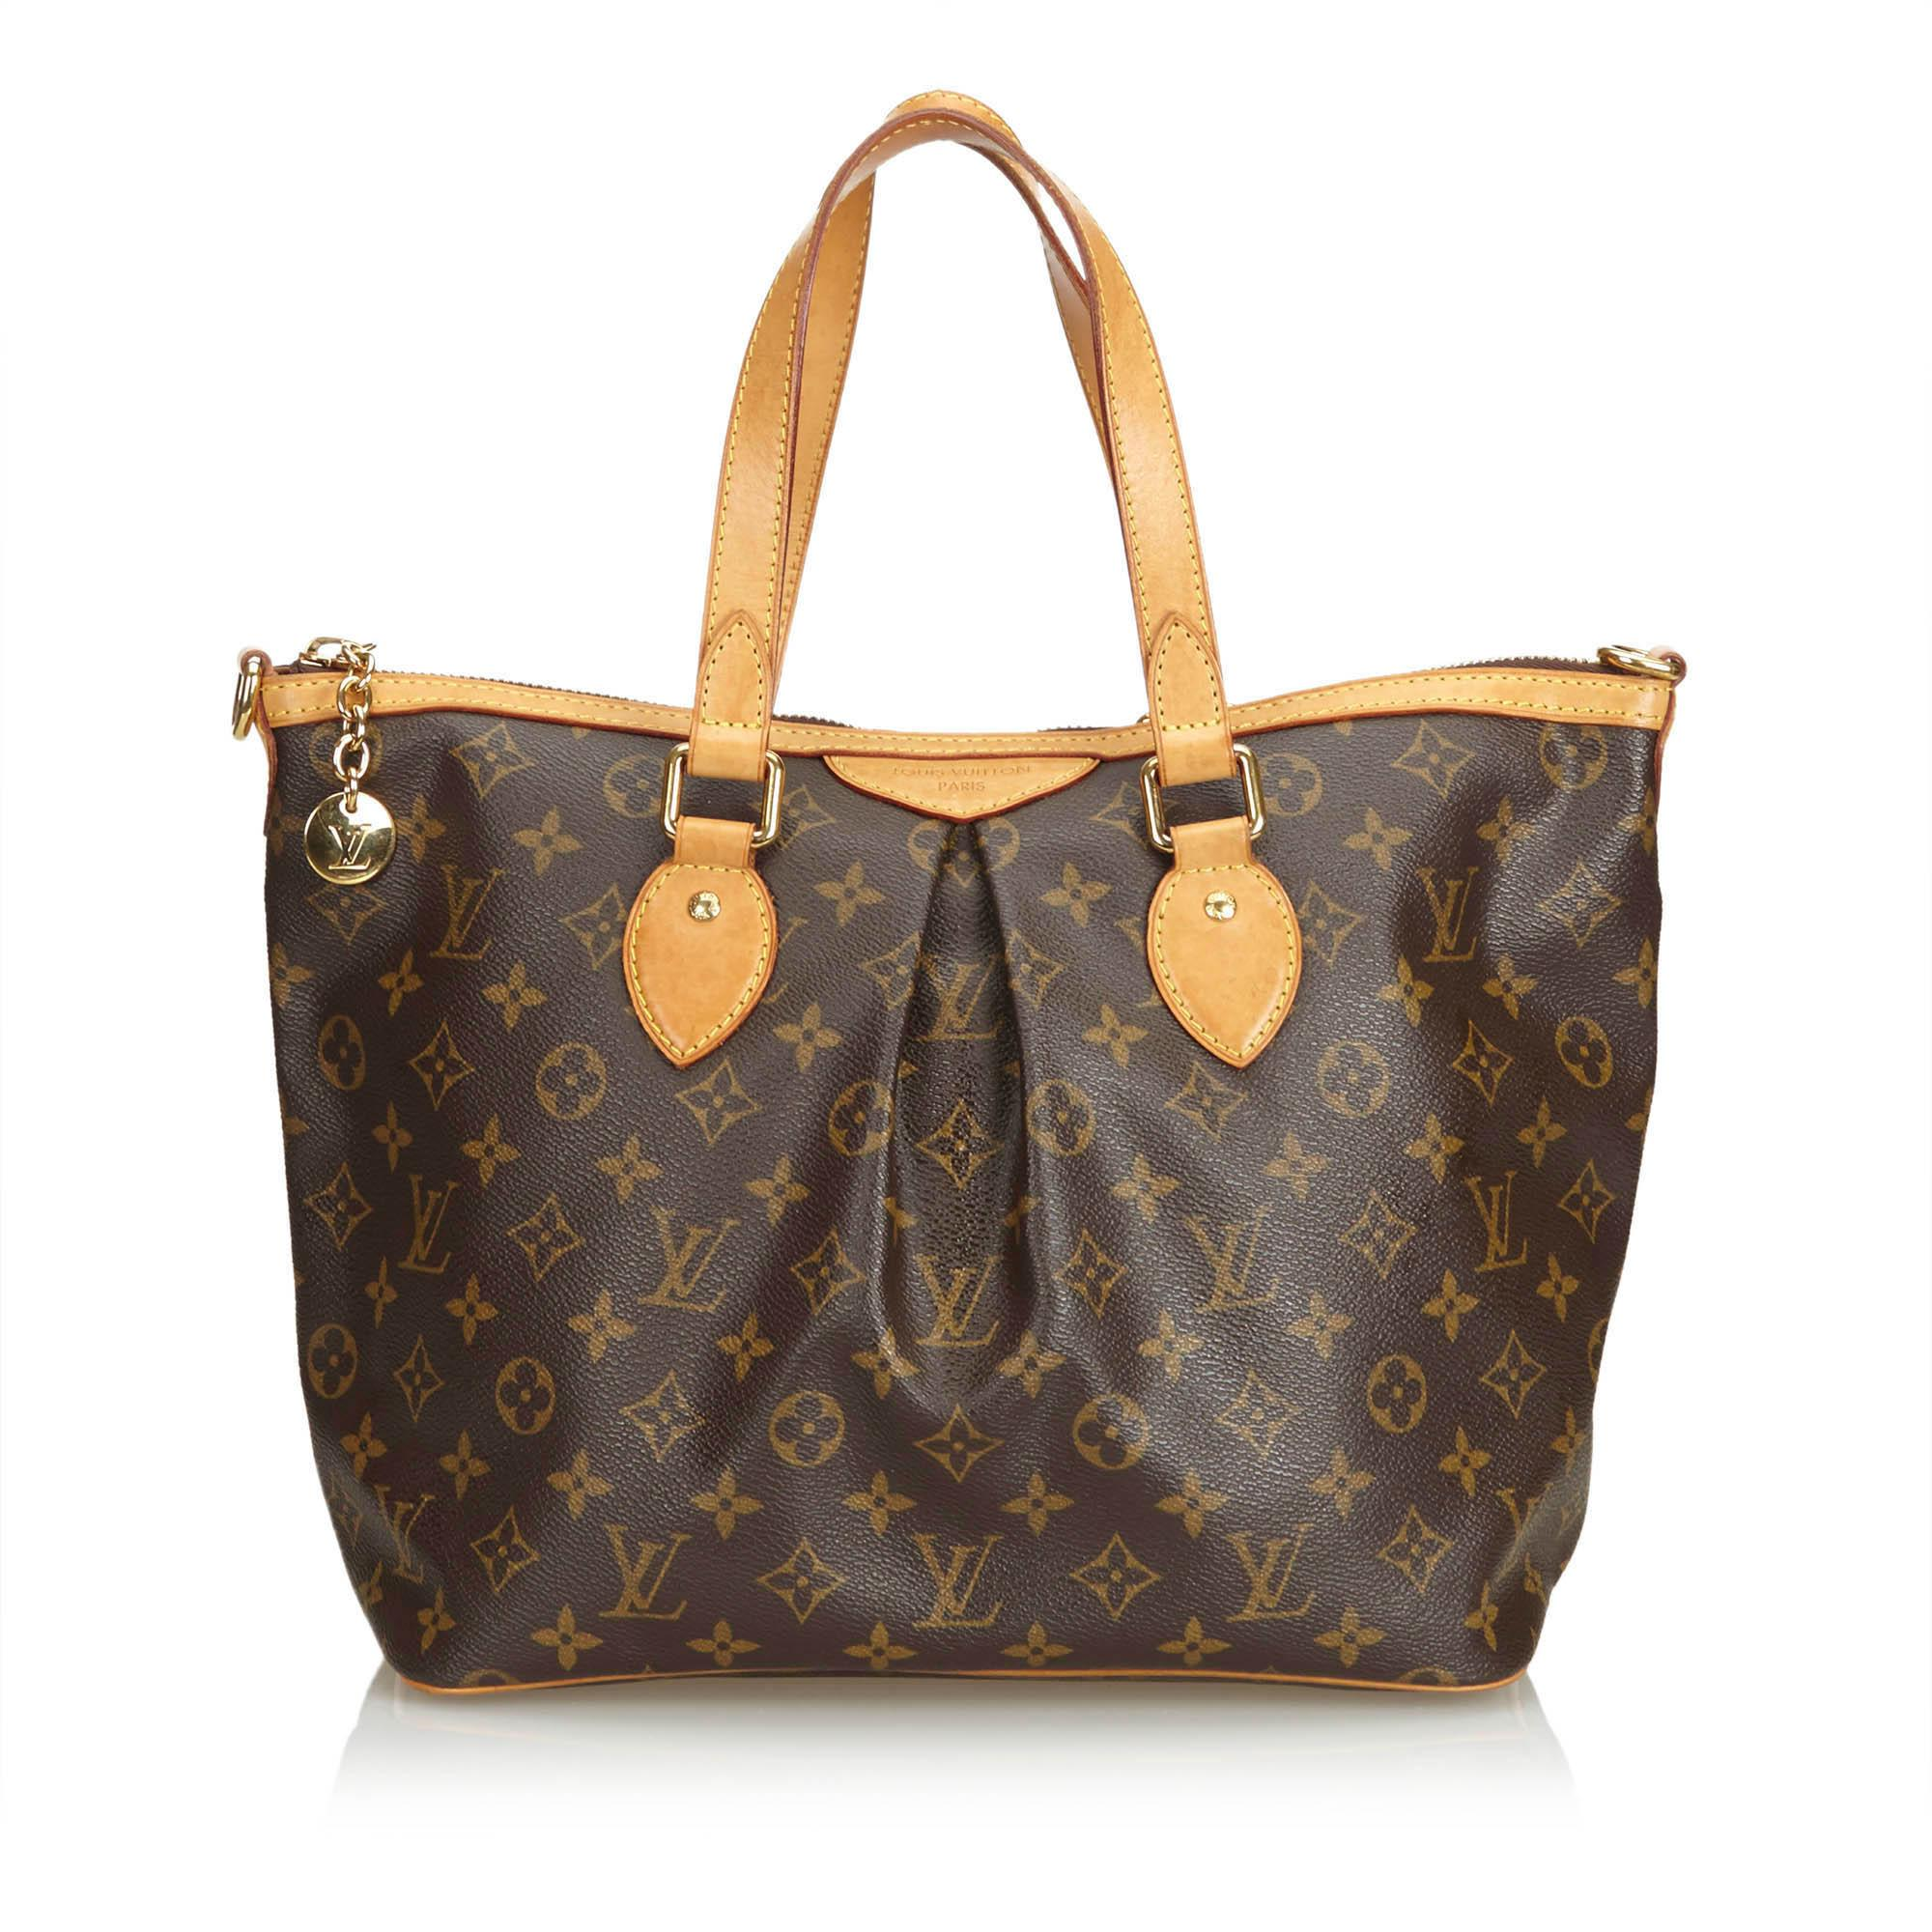 Louis Vuitton Tivoli Vs Palermo Lyst Louis Vuitton Monogram Palermo Pm In Brown